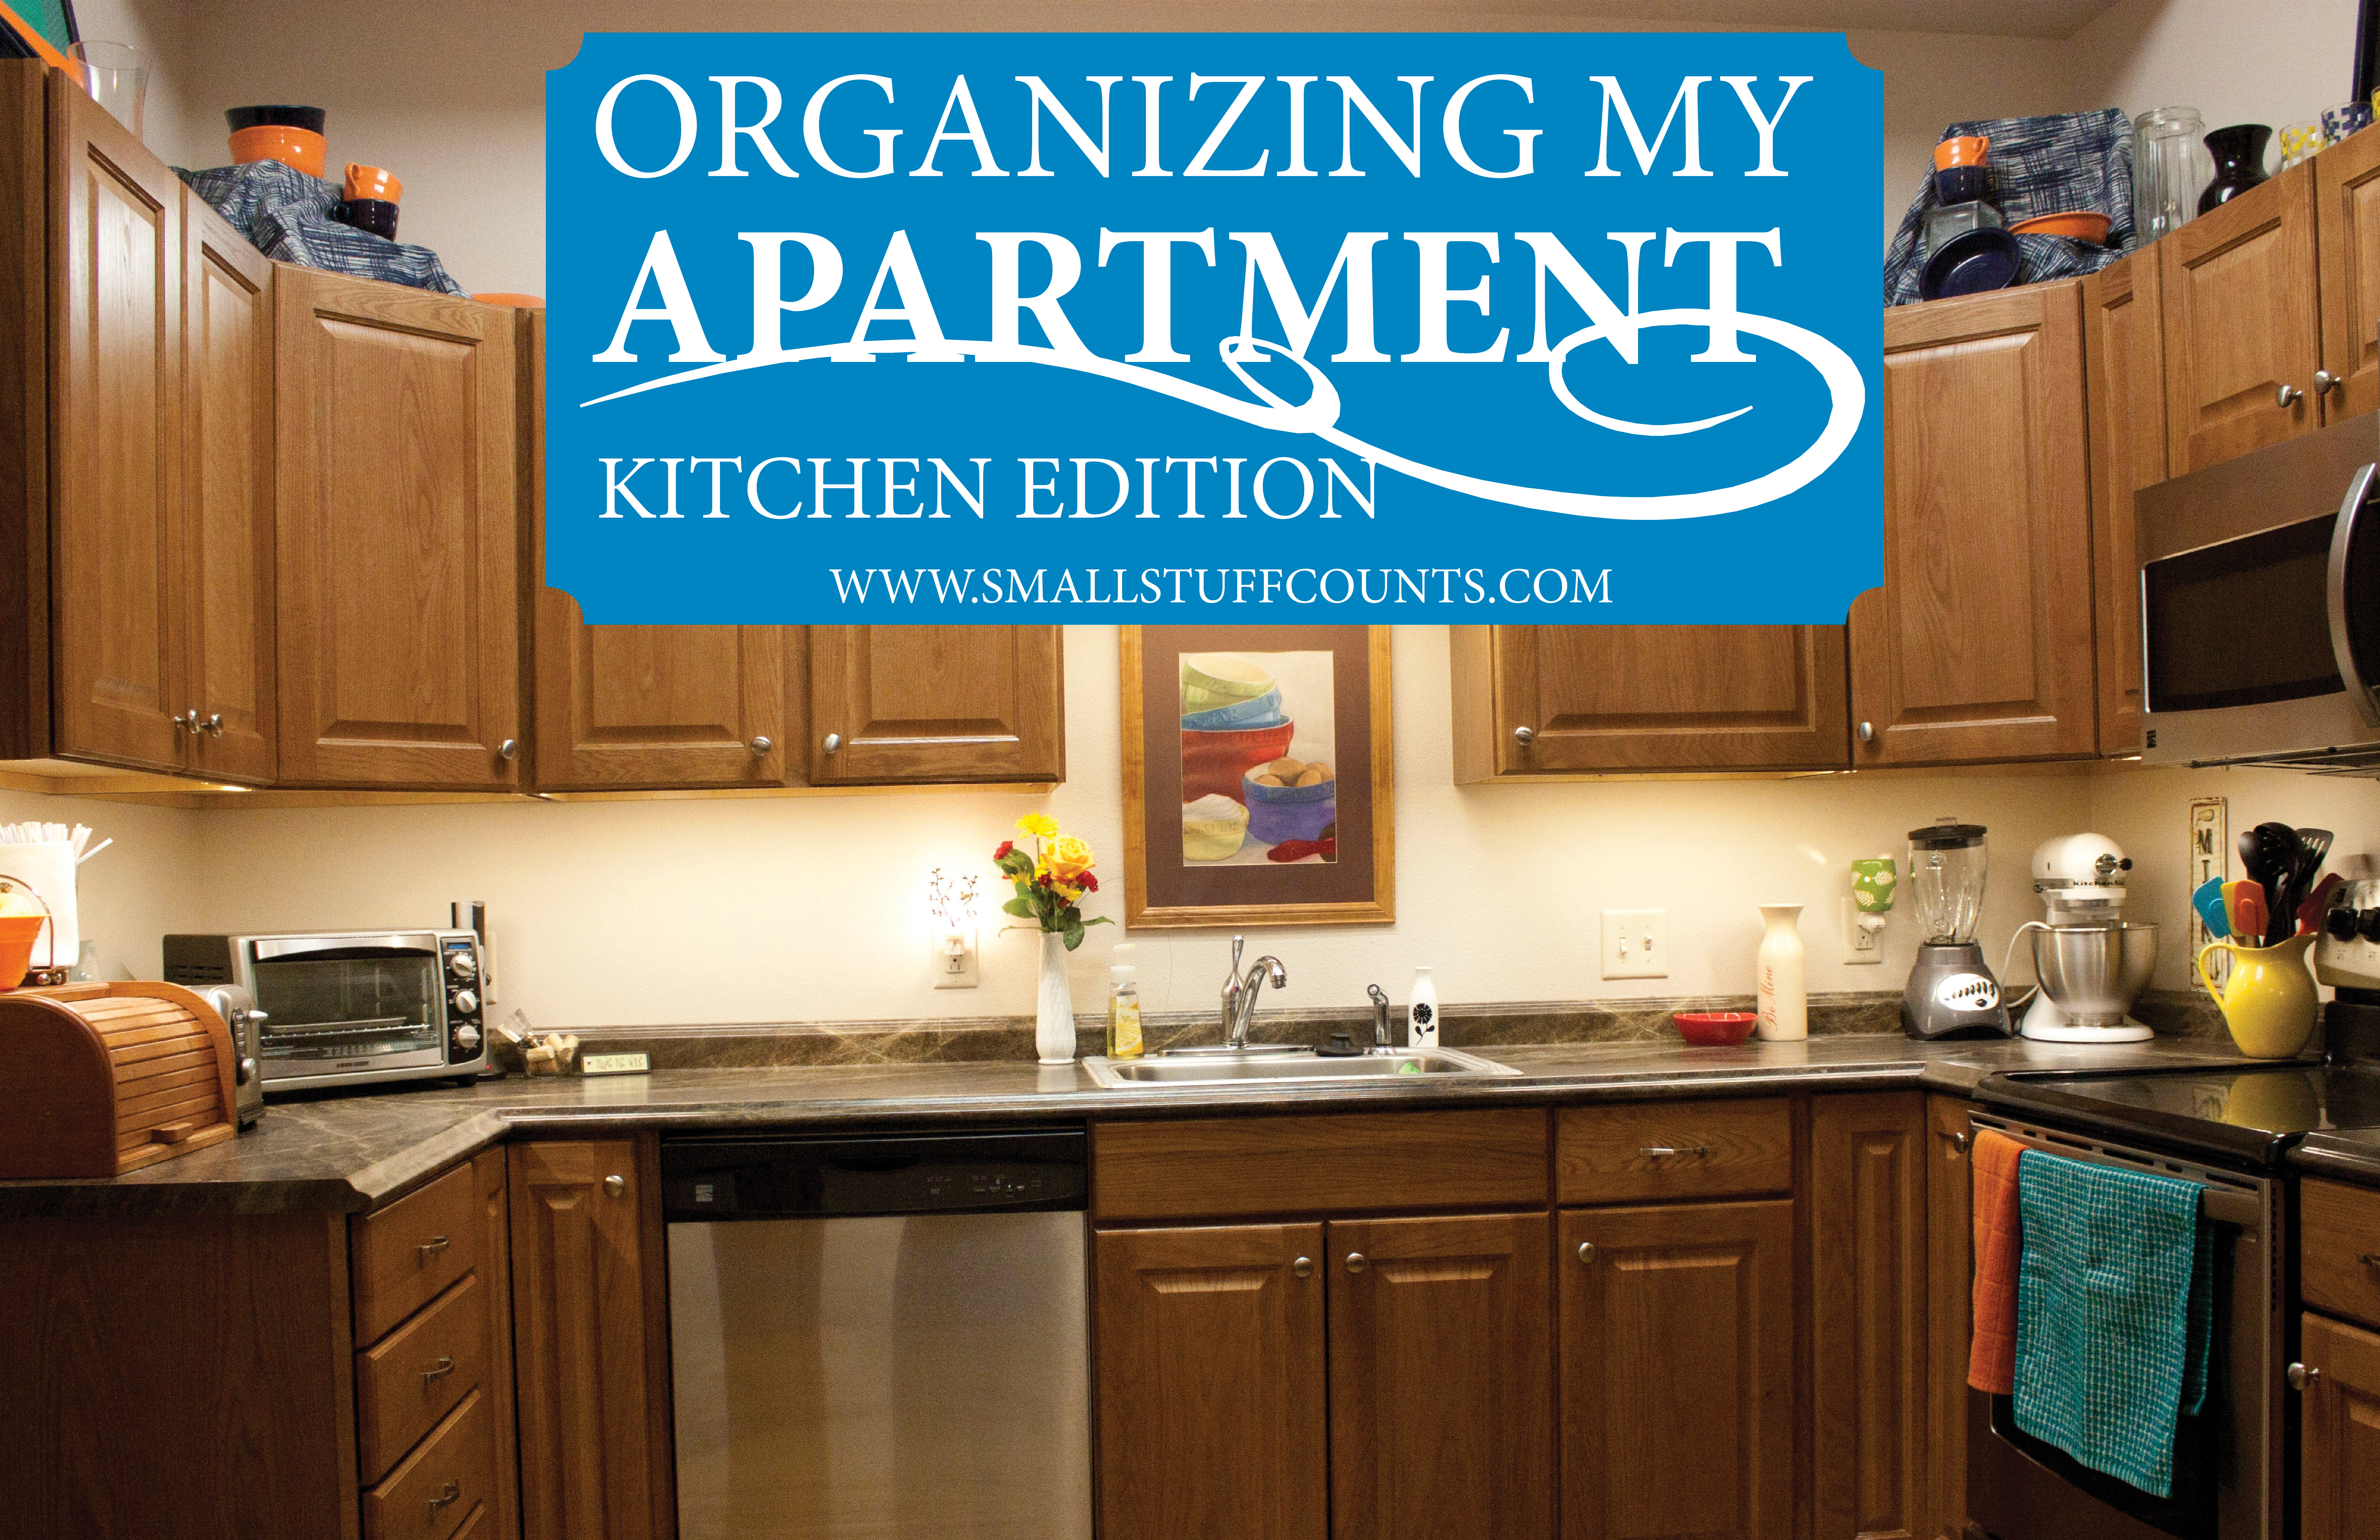 Organizing my apartment 6 rules for the kitchen small stuff counts workwithnaturefo